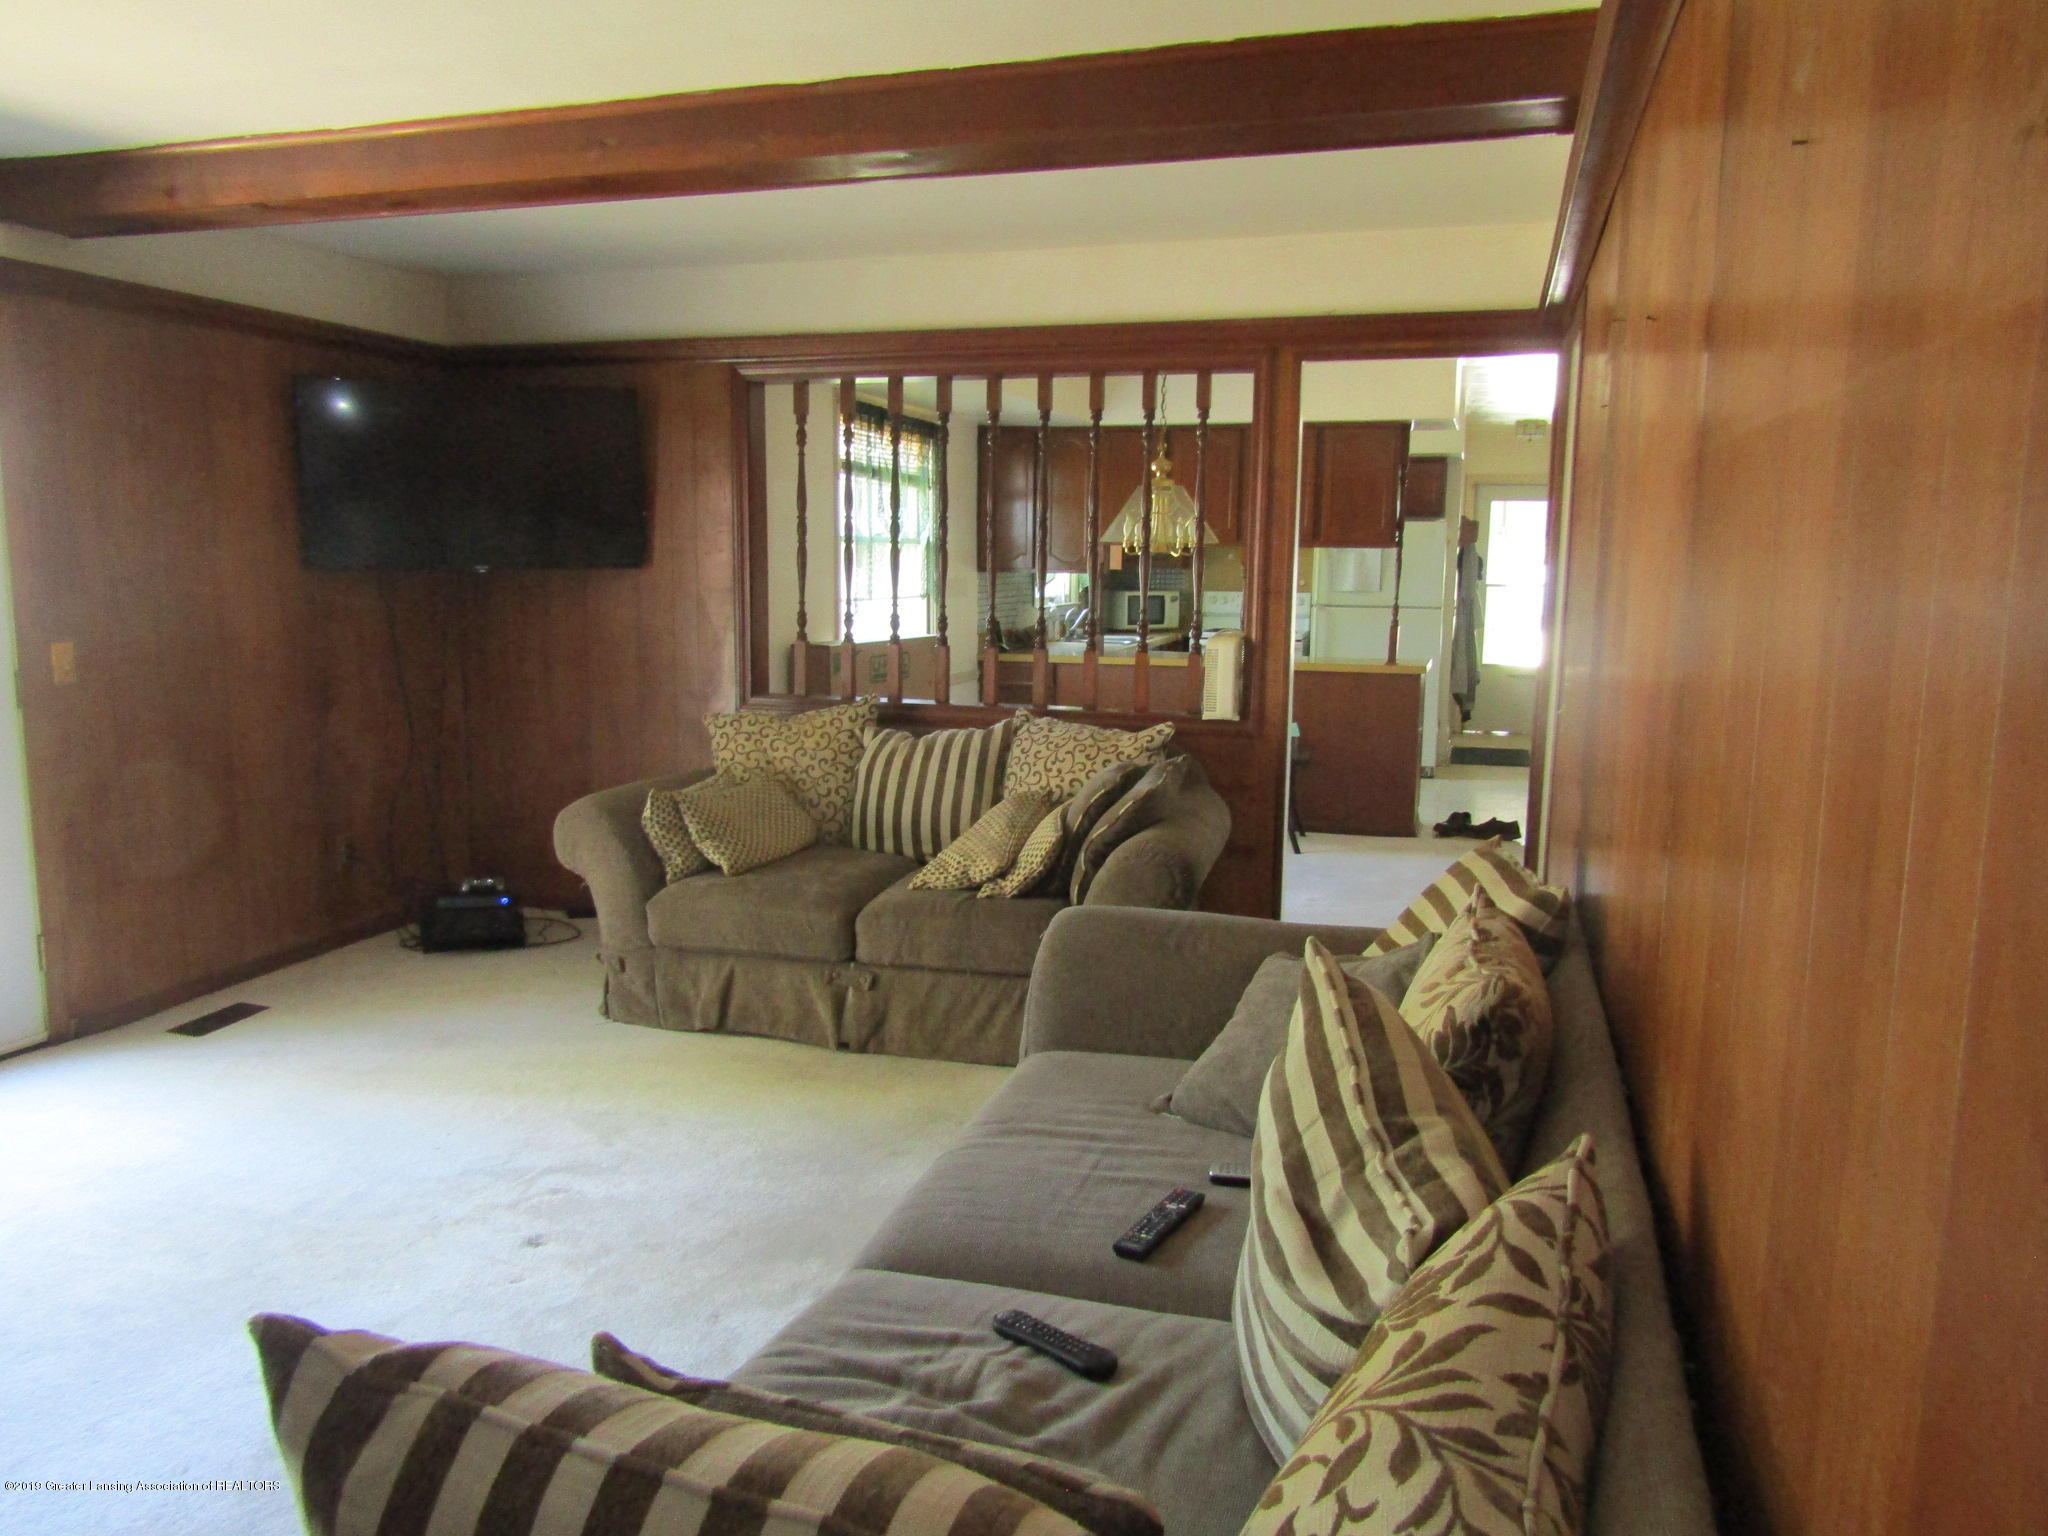 2621 S Waverly Rd - Family Room - 17